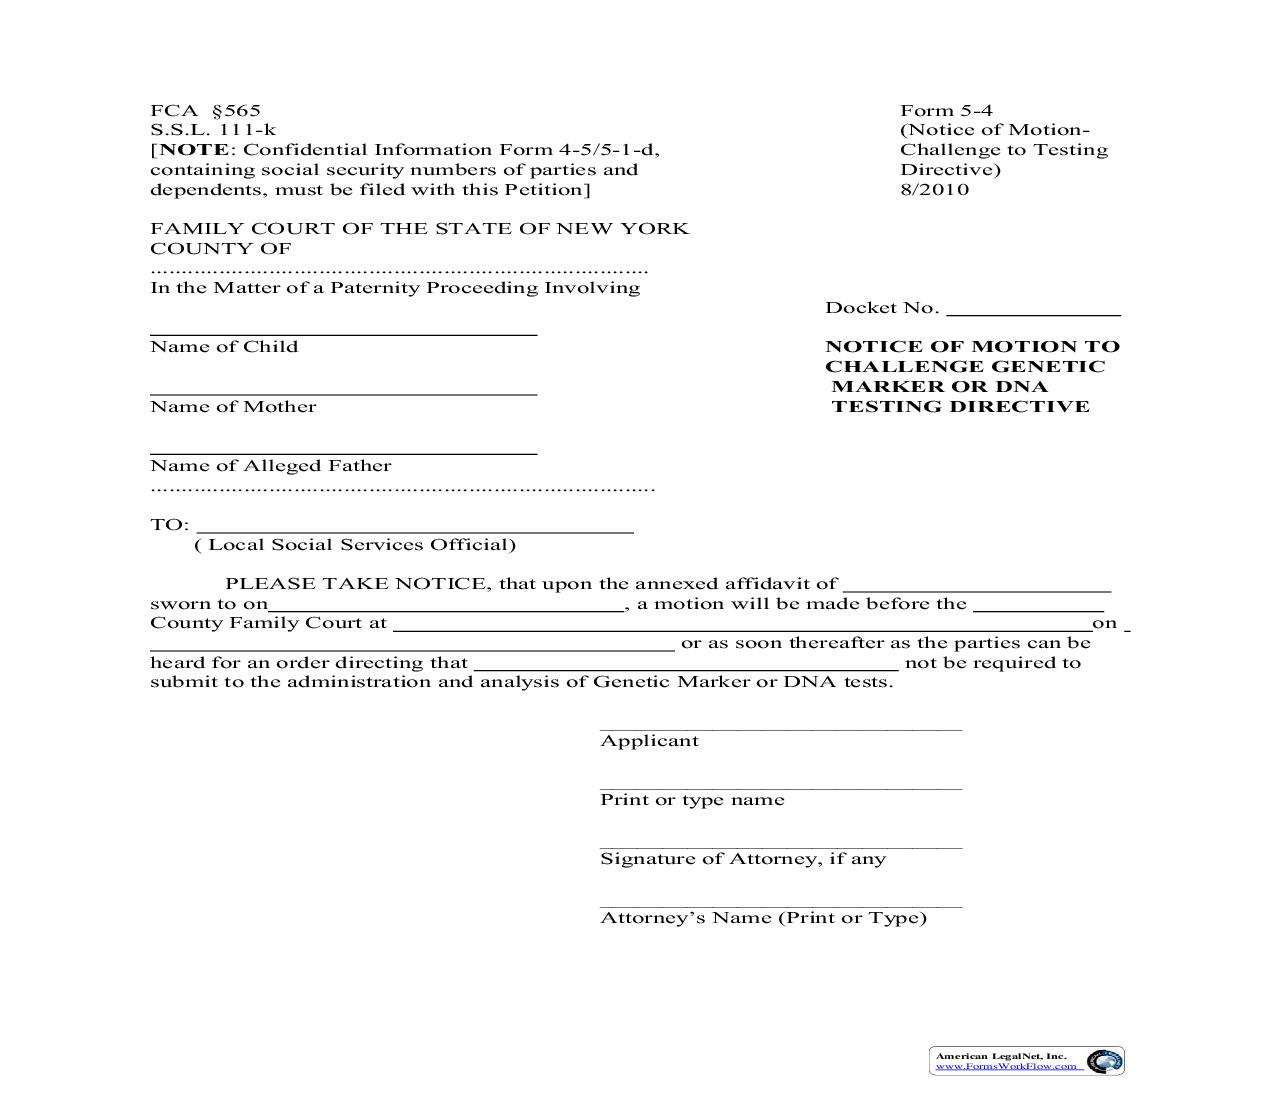 Notice Of Motion To Challenge Genetic Marker Or DNA Testing Directive {5-4} | Pdf Fpdf Doc Docx | New York